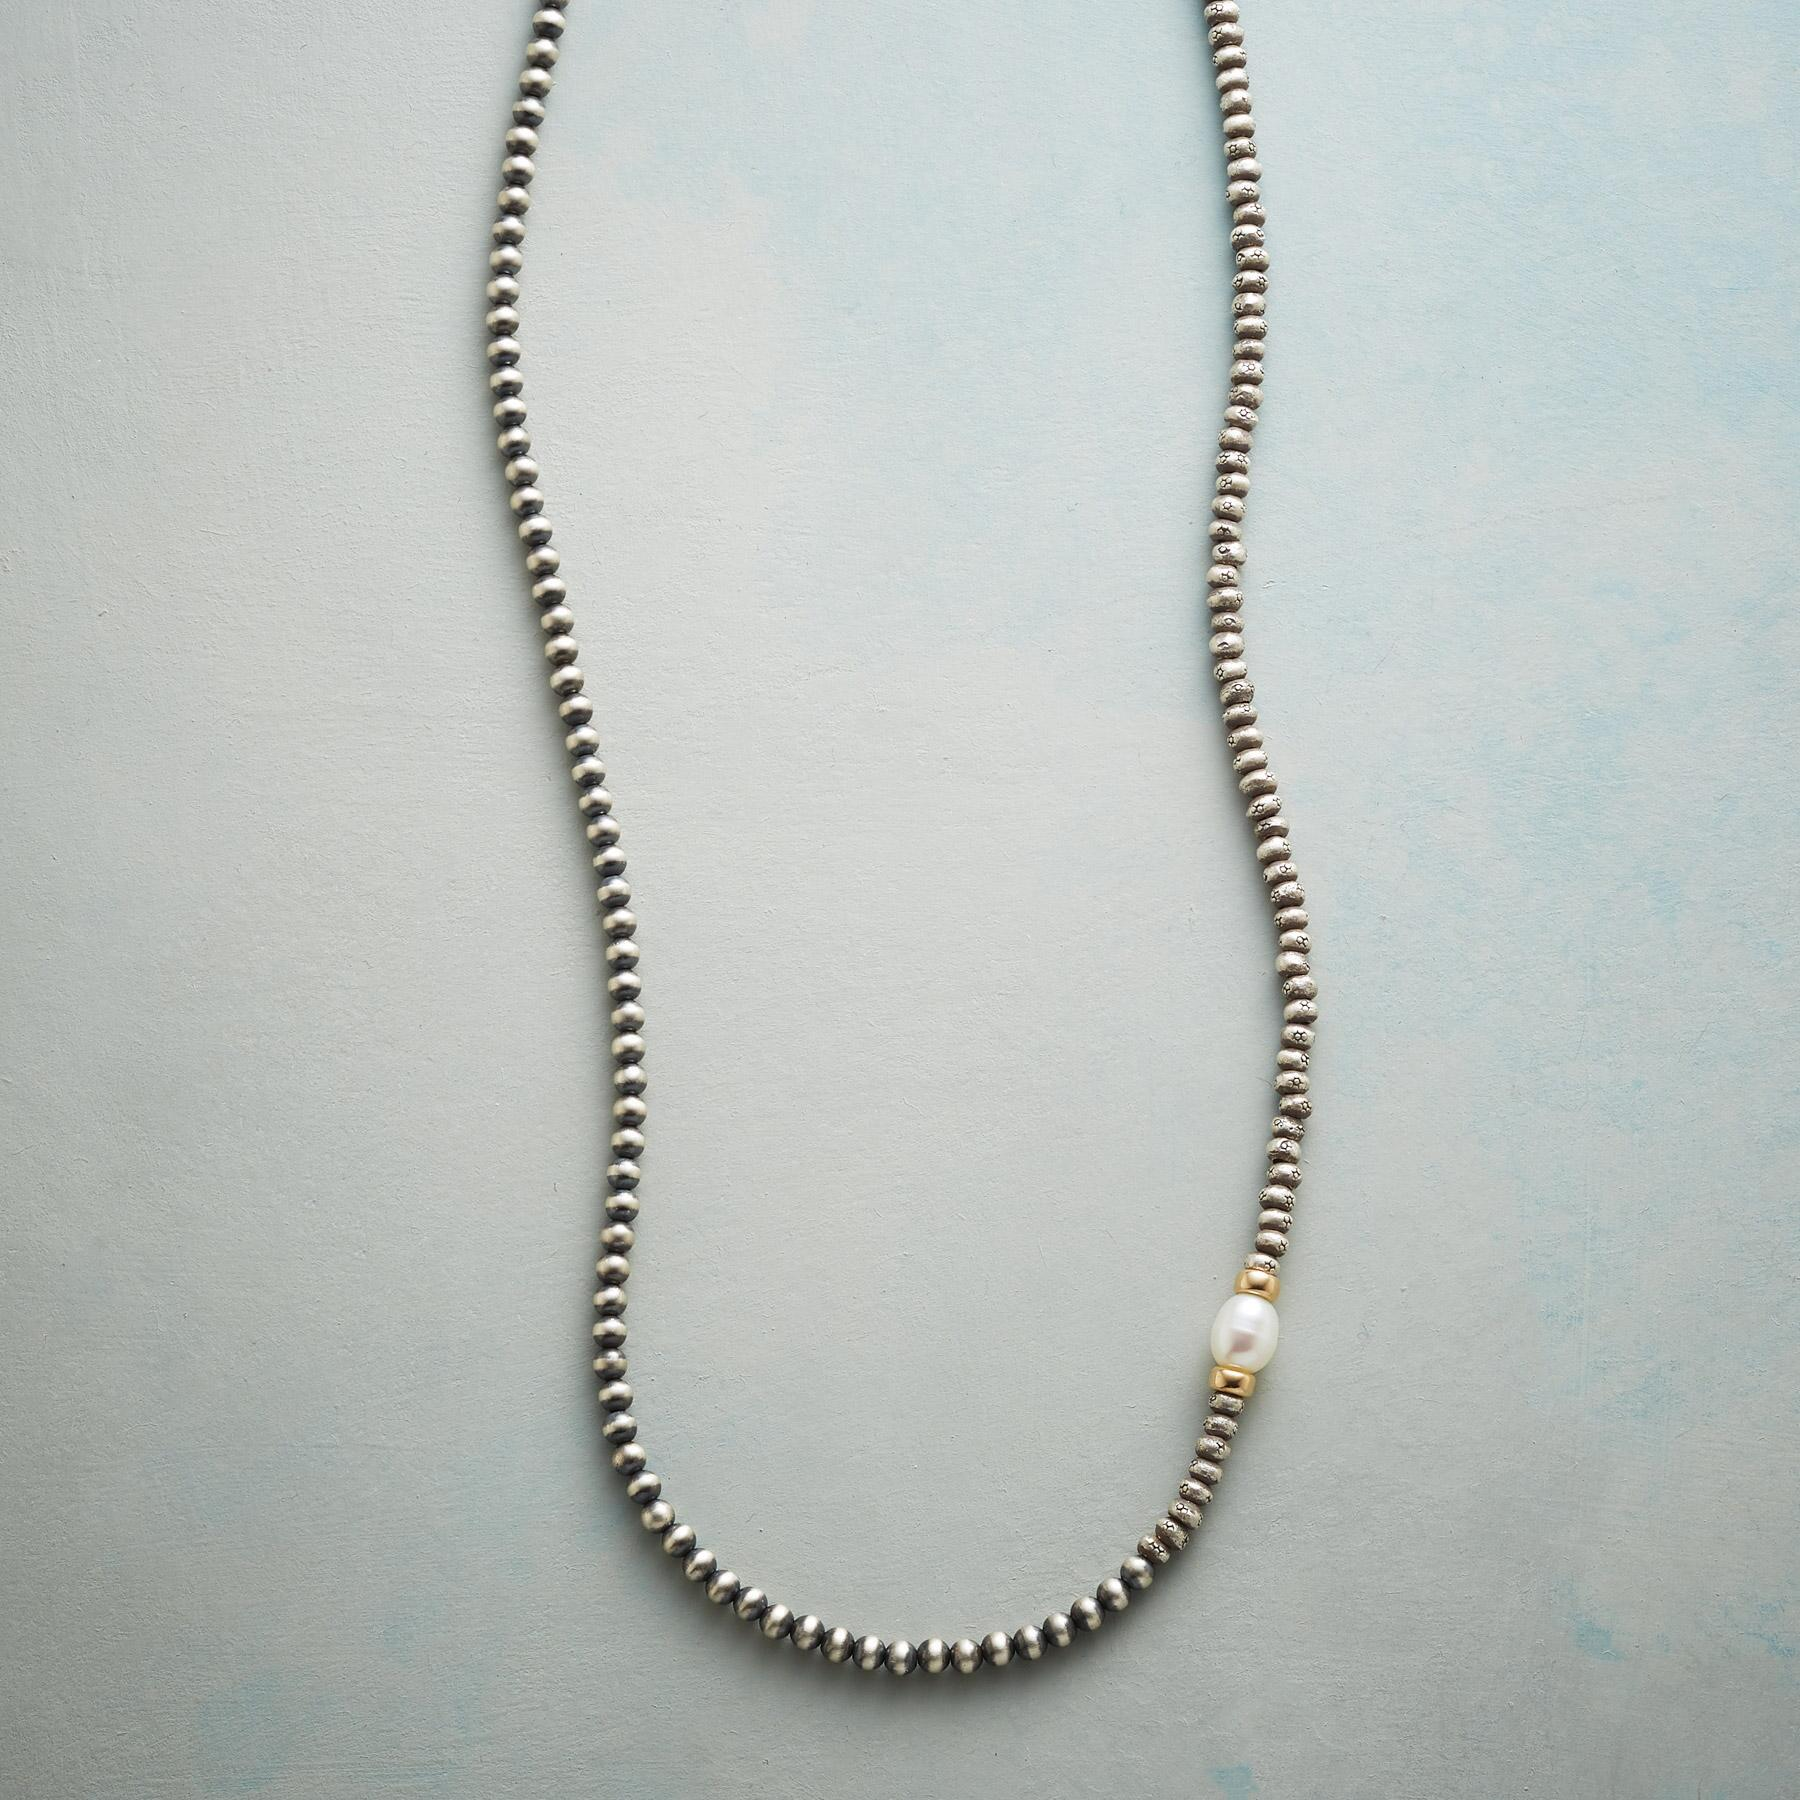 PEARL ASKEW NECKLACE: View 1